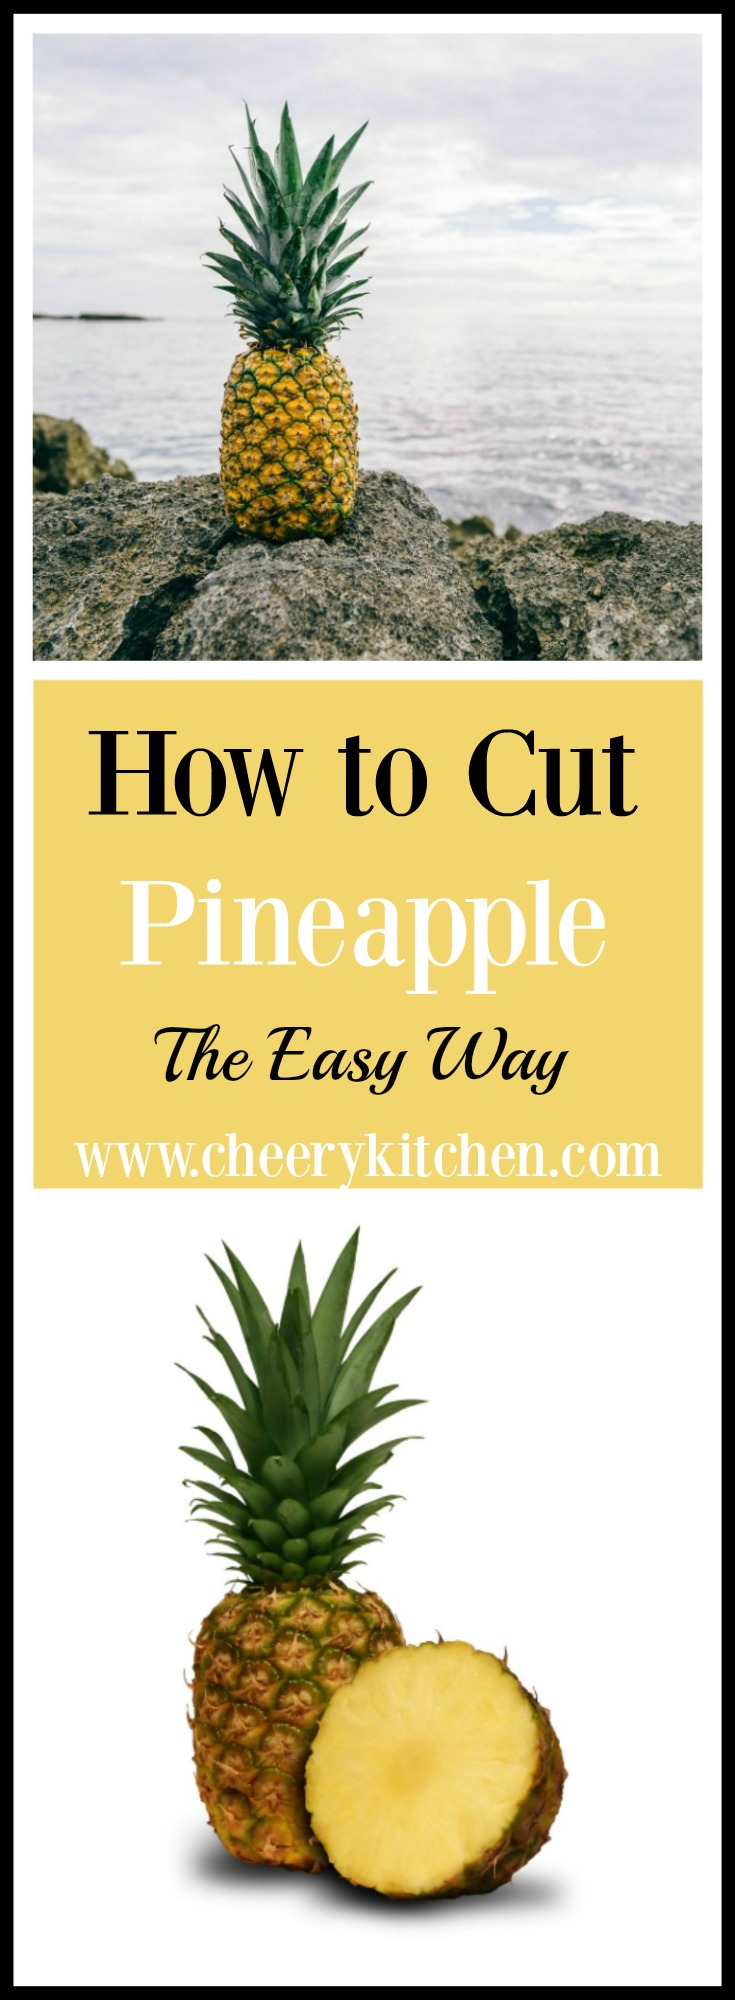 Do you hate to cut pineapple as much as I do? Well, stop working so hard because we have just the thing to make it easy as 1-2-3!